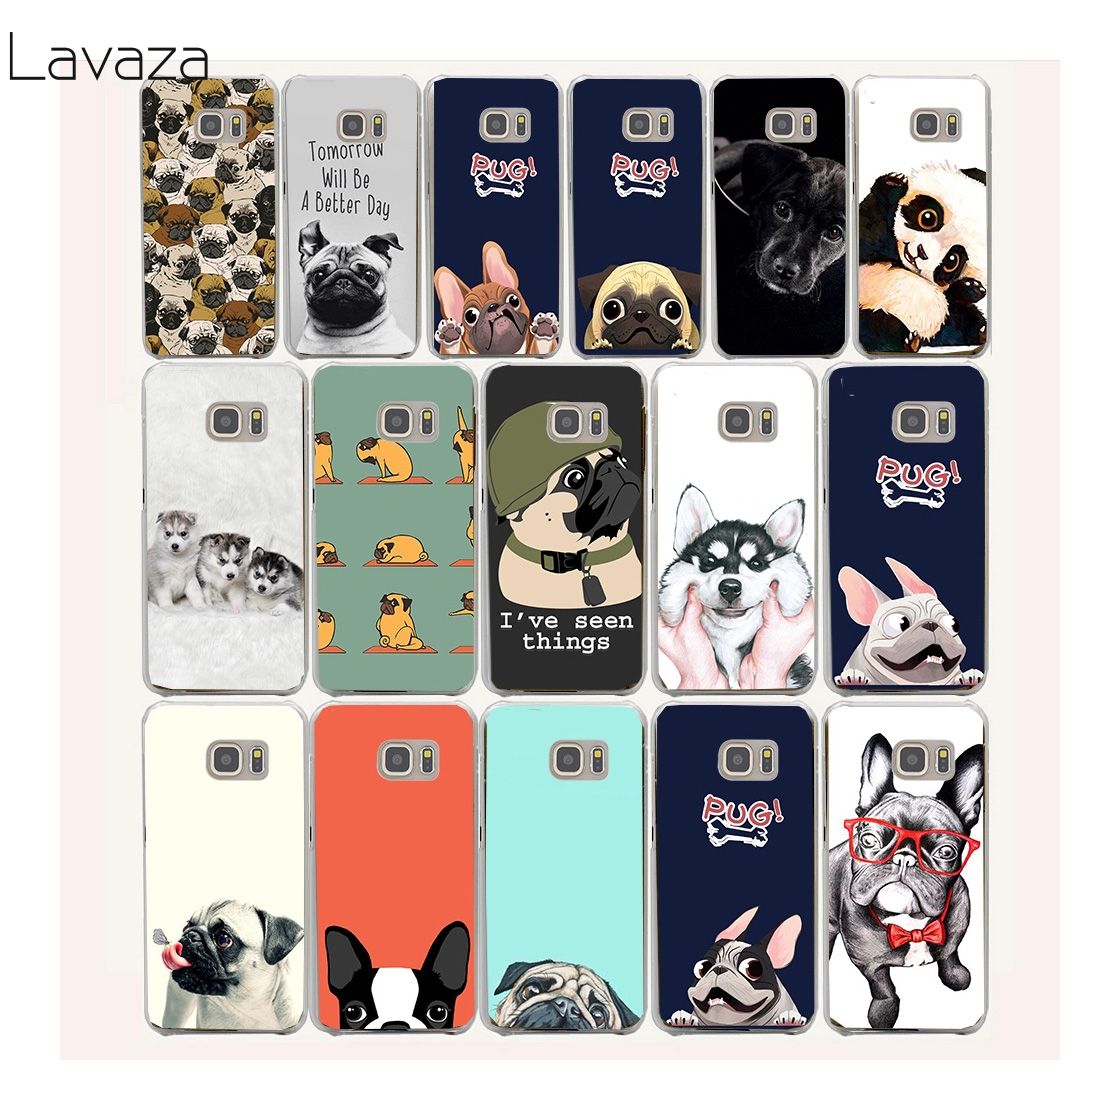 Lavaza 40af funny PUG cute Pet dog Hard Case Cover for Samsung Galaxy S3 S4 S5 Mini S6 S7 S8 S9 Edge Plus Case ...